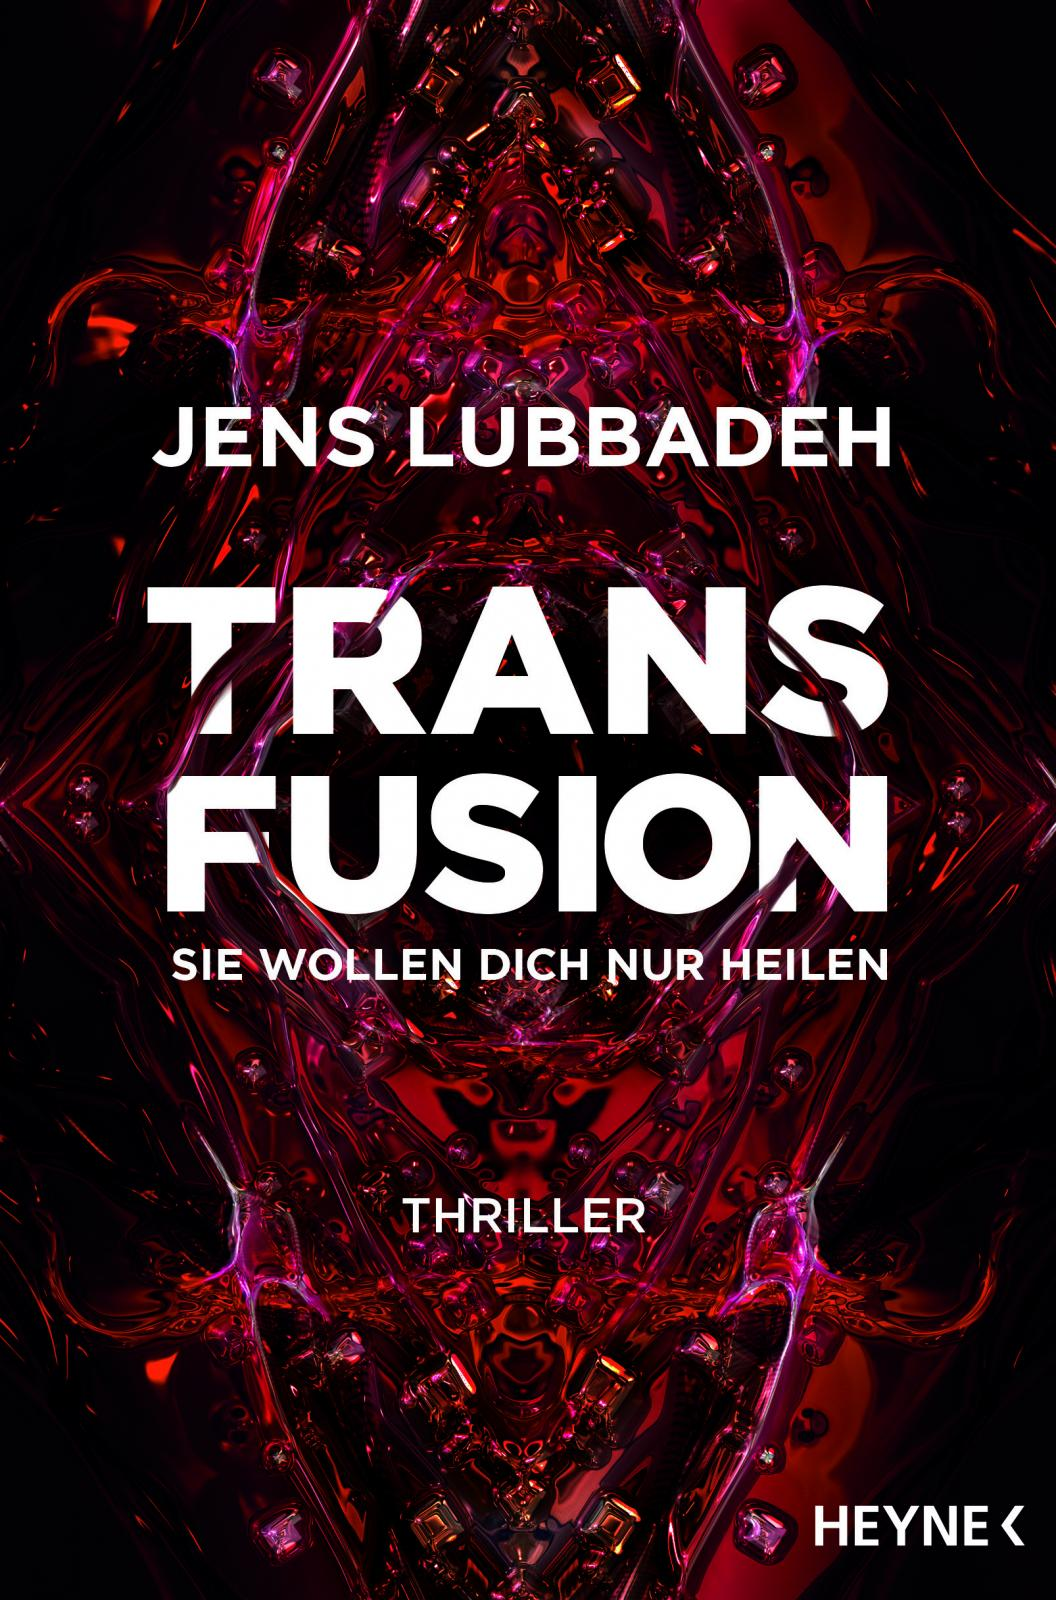 Jens Lubbadeh: Transfusion